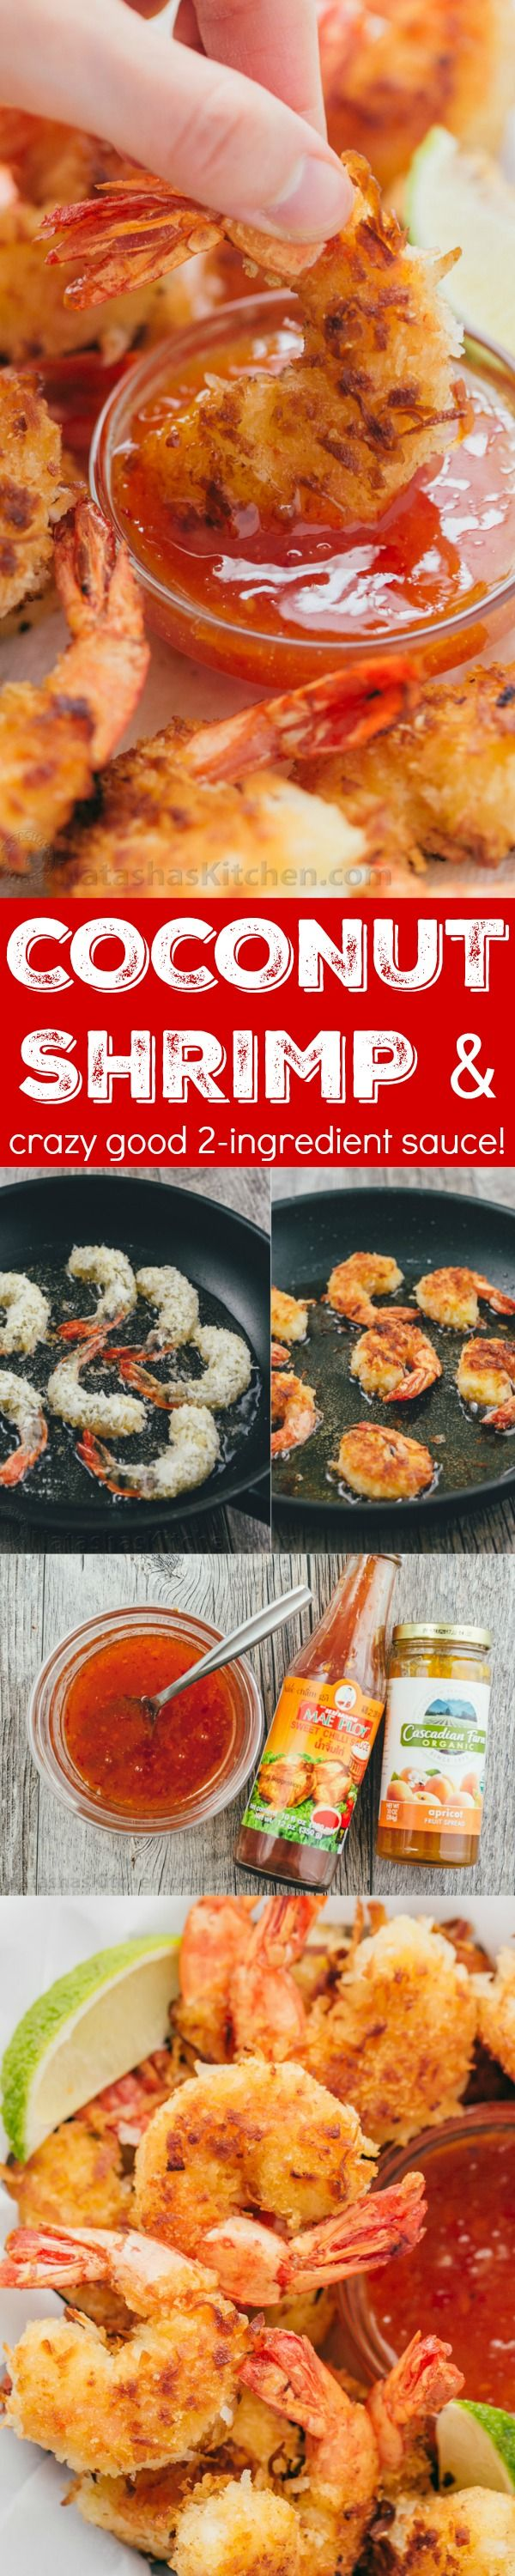 These Coconut shrimp are coated in plenty of coconut for superior crunch and subtle tropical flavor. The 2 ingredient dipping sauce for coconut shrimp will win you over and it's so easy! | http://natashaskitchen.com